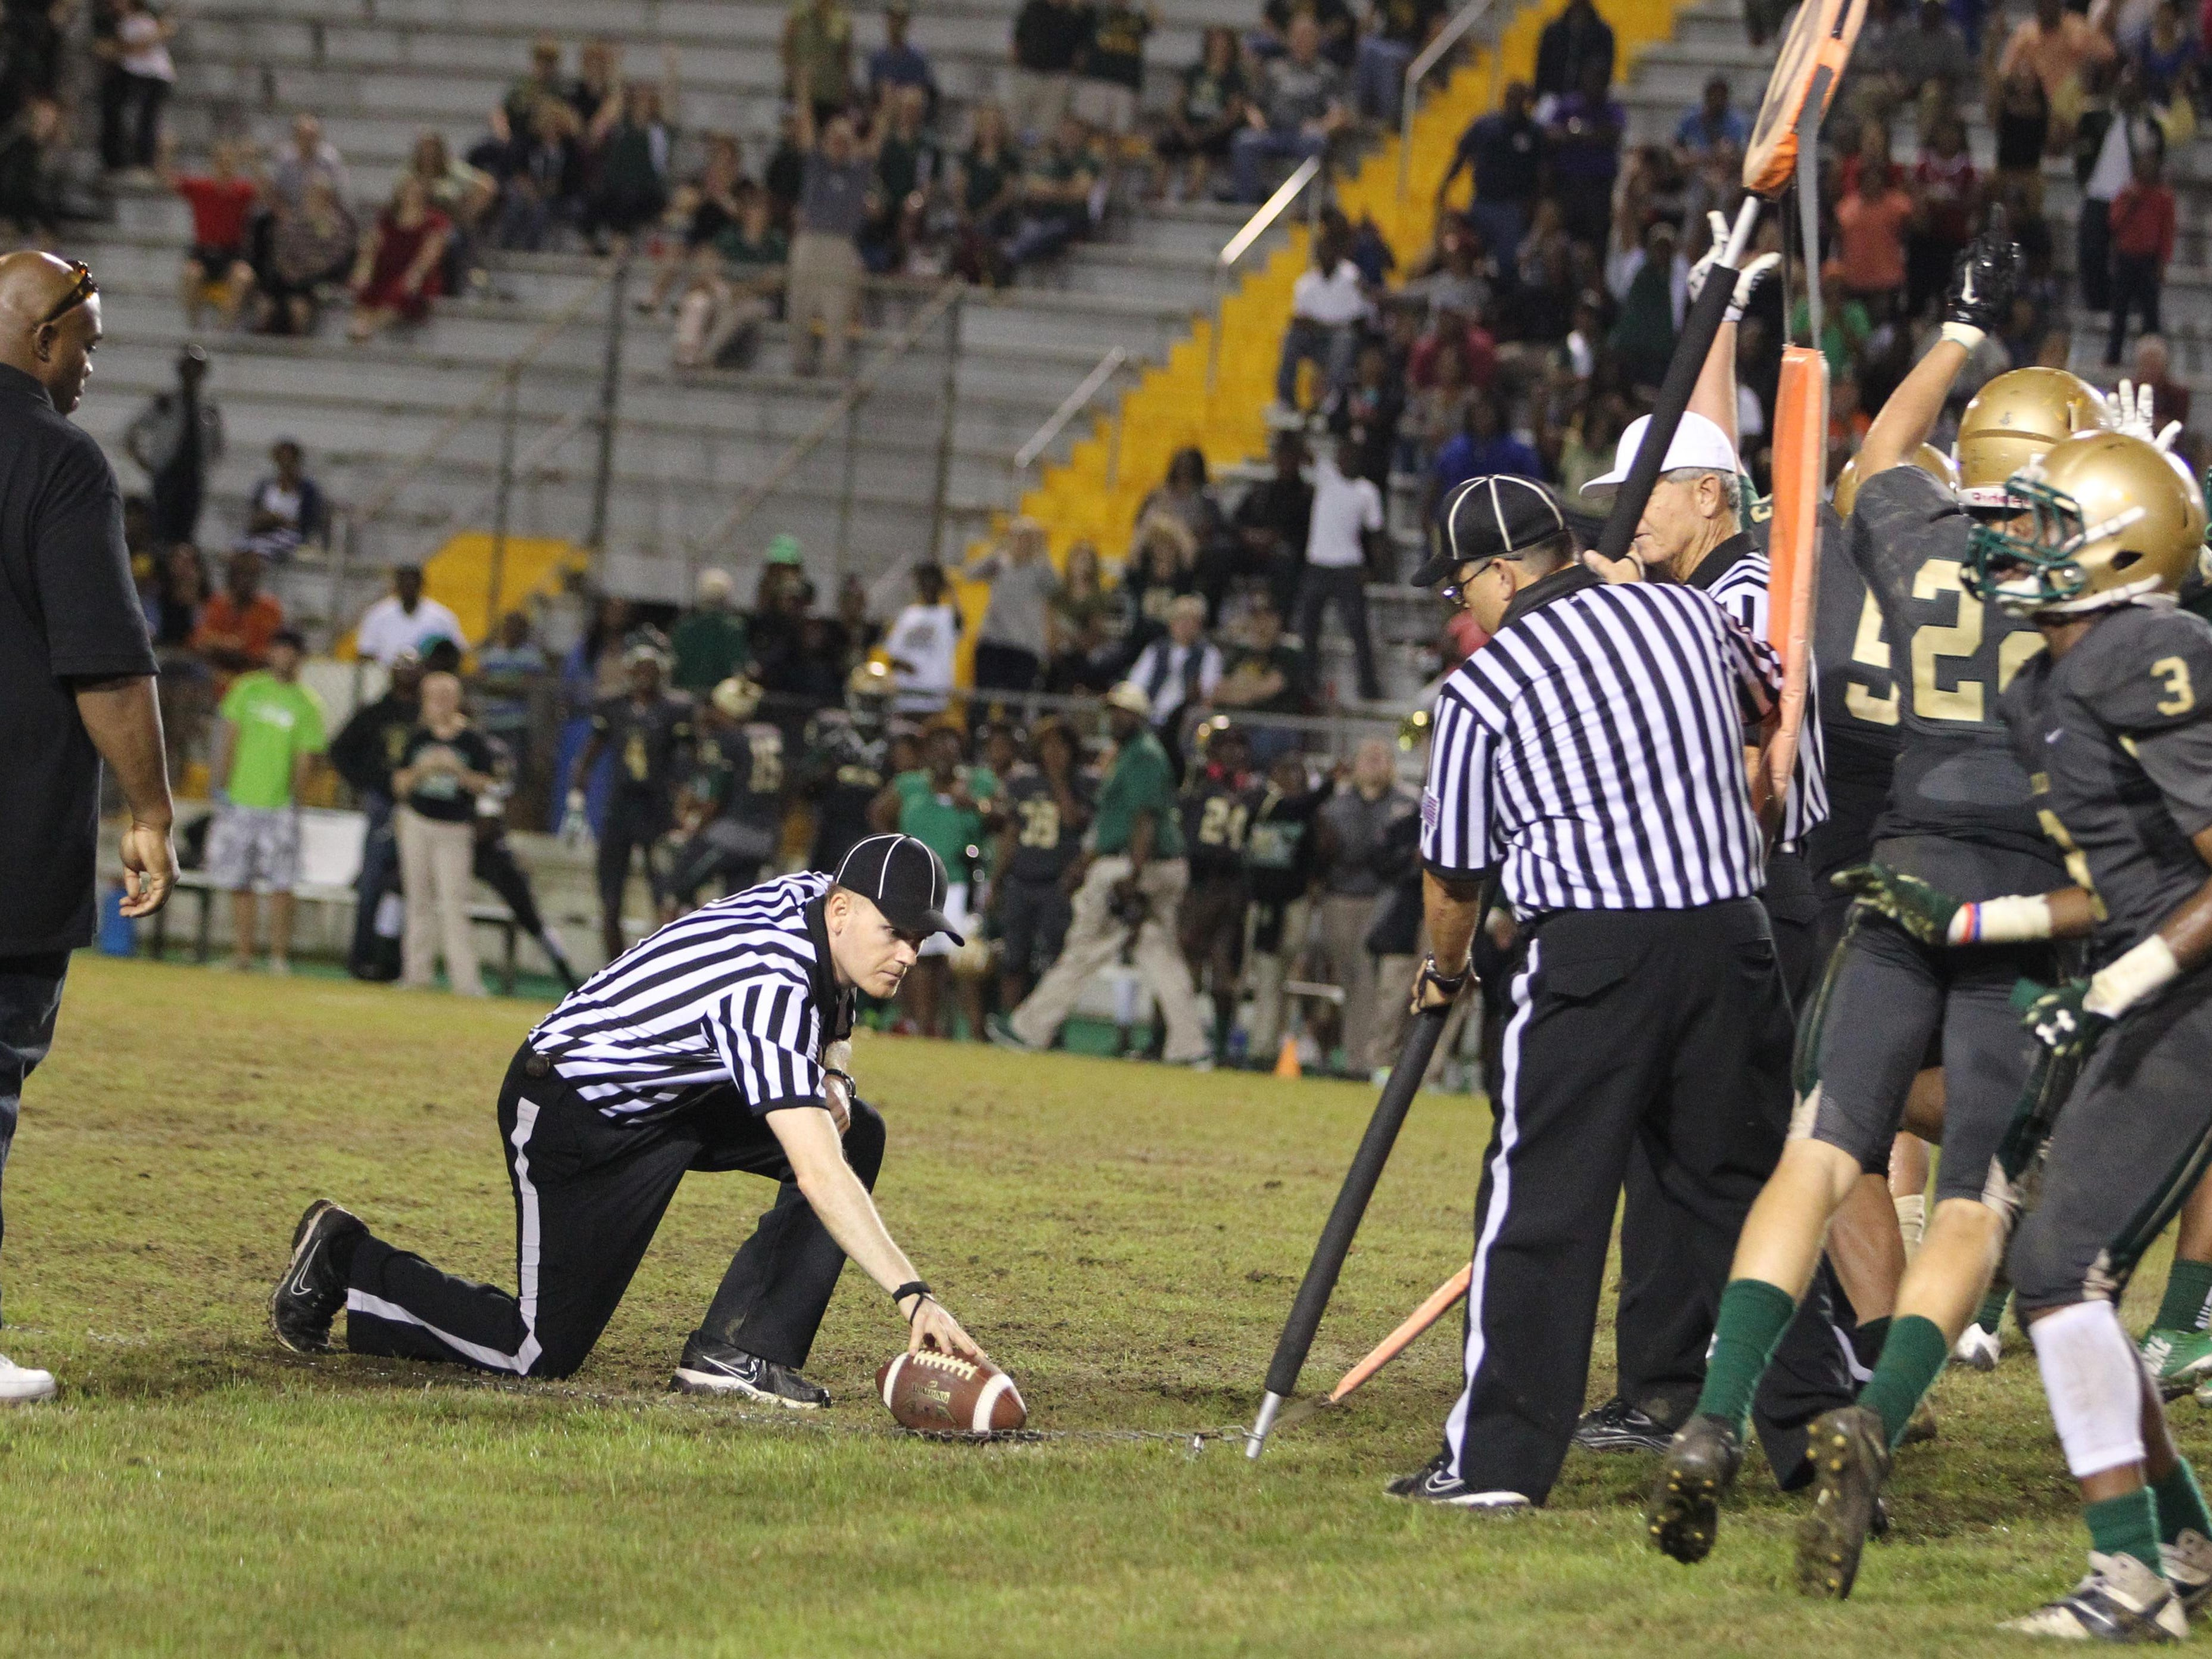 Lincoln players react as referees decide a fourth-quarter play didn't give Godby enough yards for a first down, effectively ending the game with a few seconds left on the clock. As a result, Lincoln beat Godby 42-34 when the Cougars' final drive stalled.